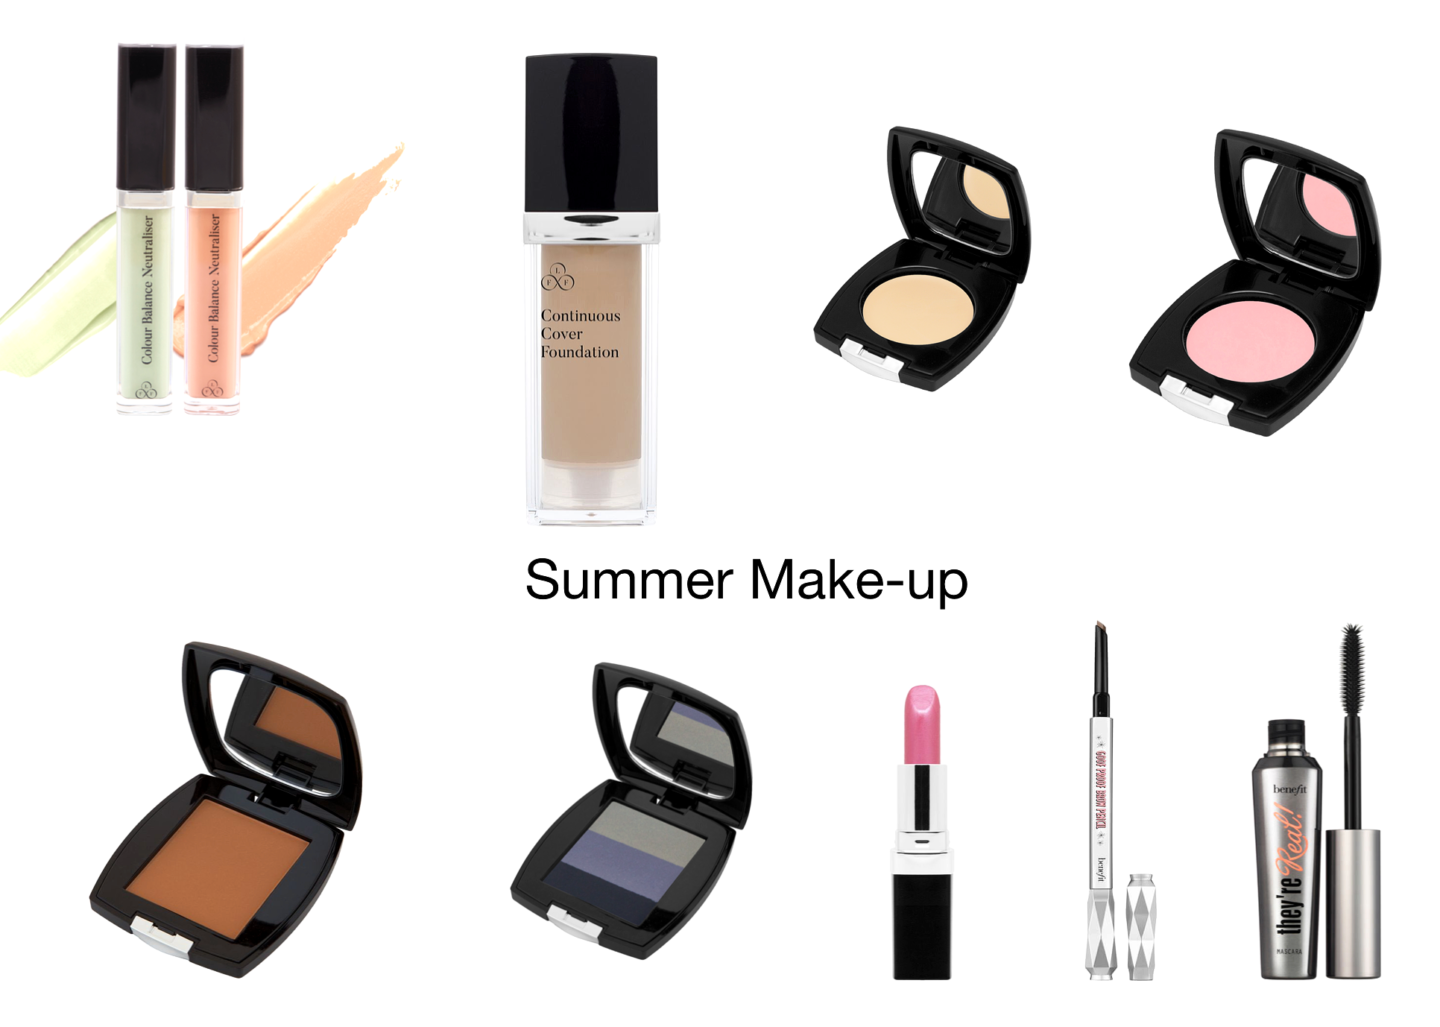 My summer Make-up routine